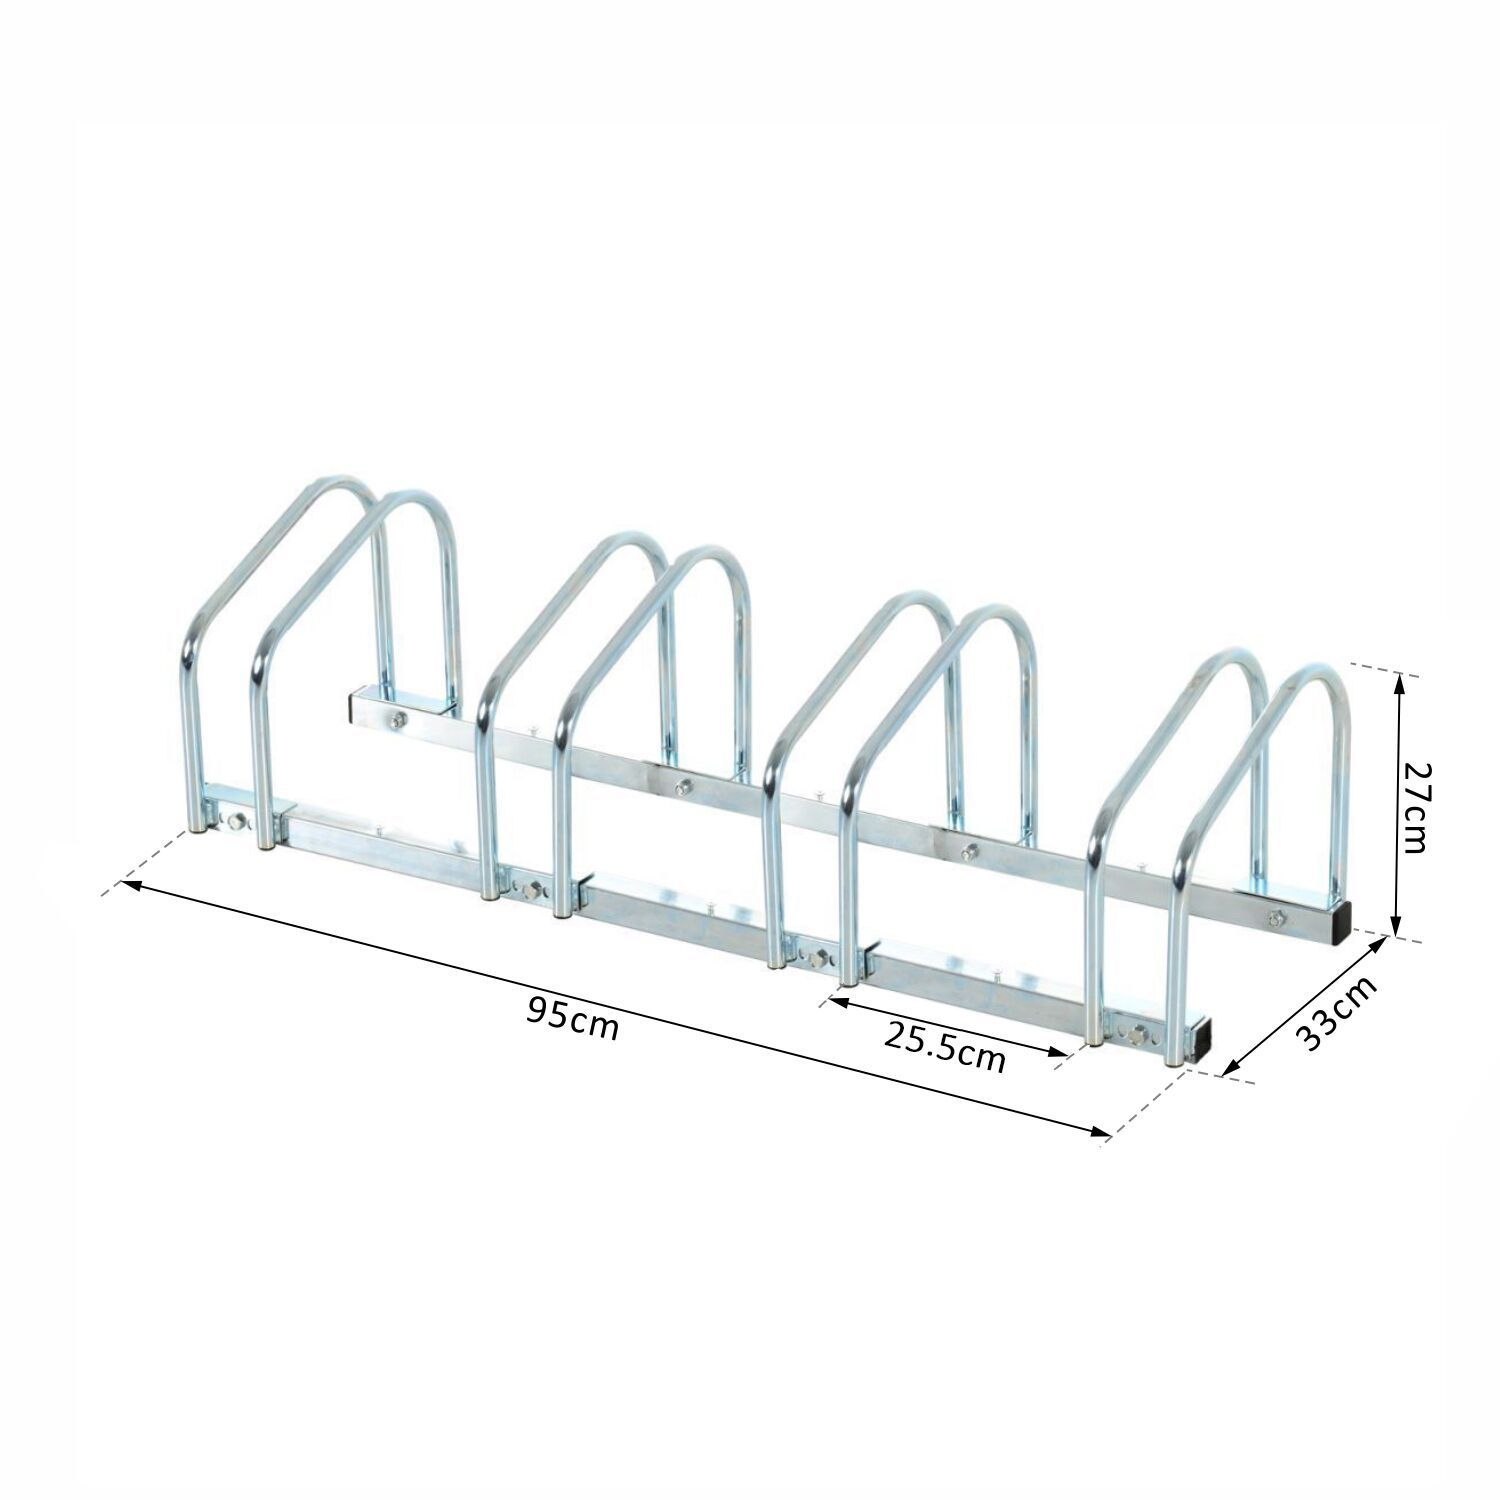 Bicycle-Bike-Parking-Cycle-Floor-Rack-Stand-Storage-Mount-Holder-Steel-Pipe miniatura 12